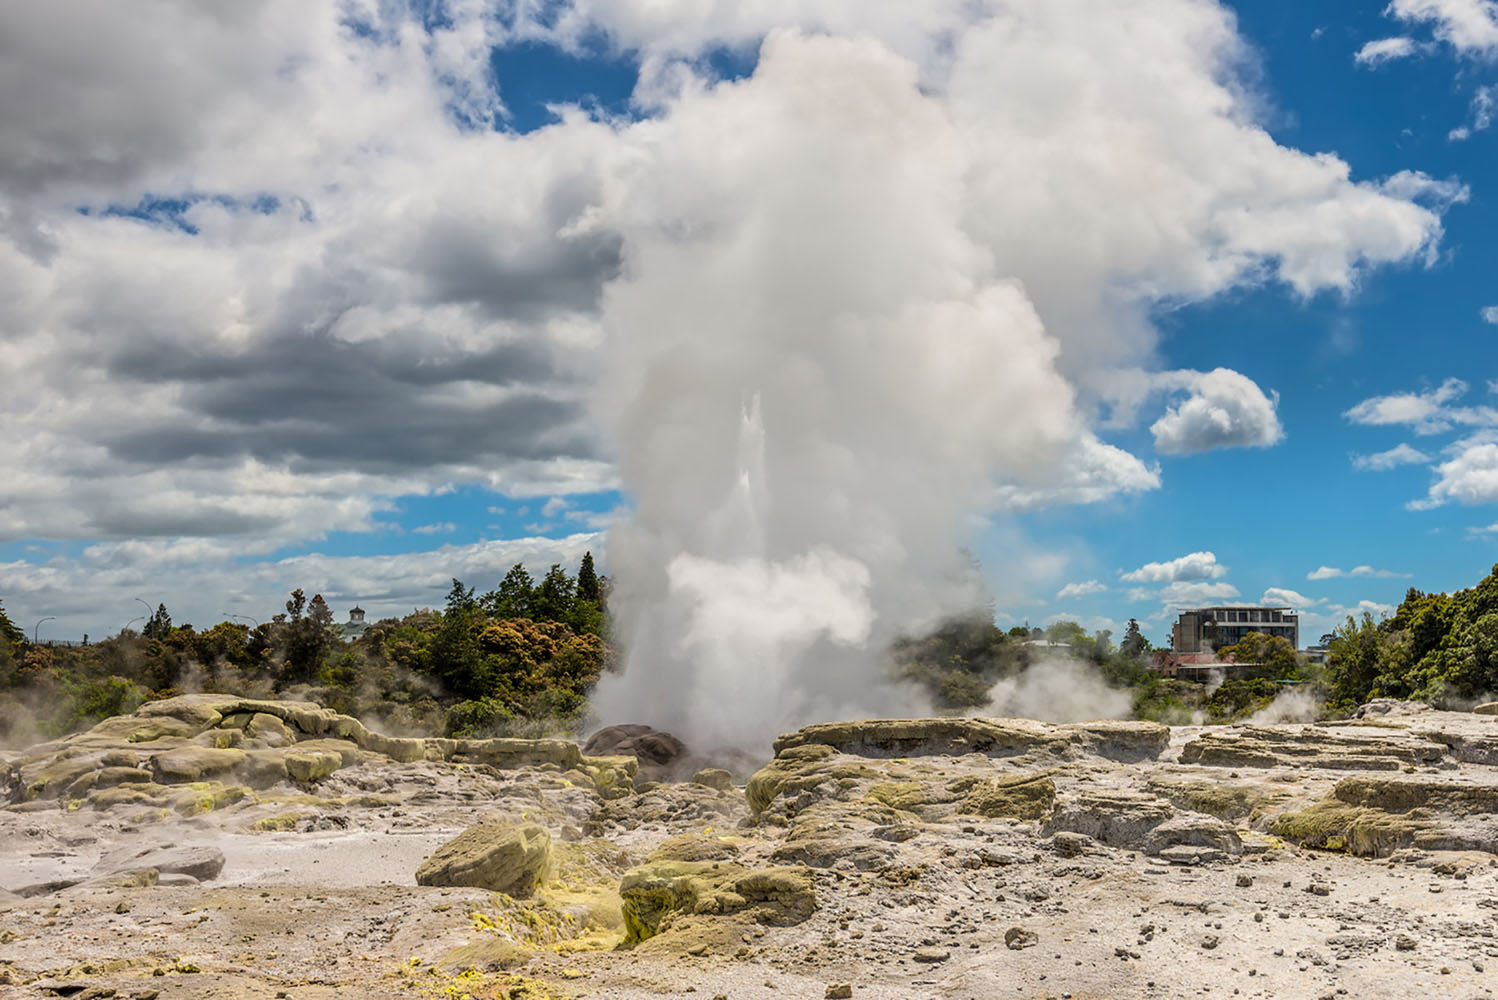 See the Pohutu Geyser when you visit Rotorua, New Zealand.